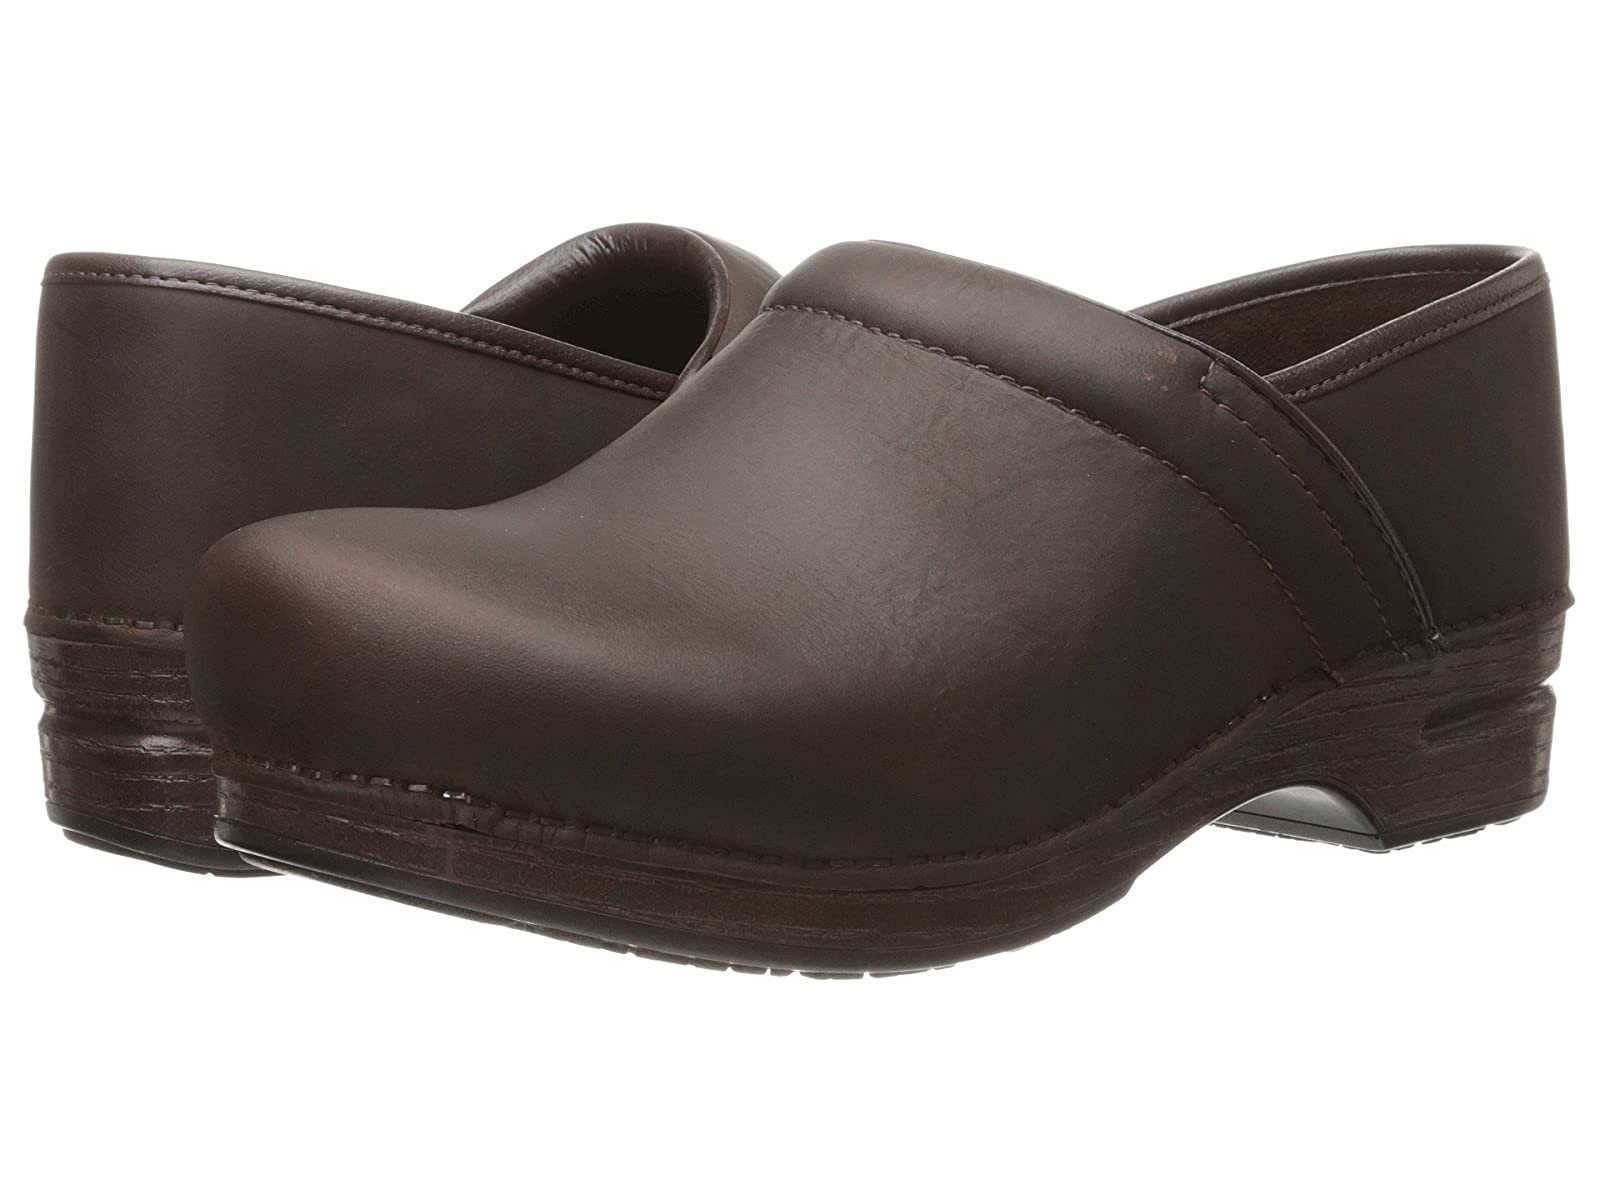 Dansko Pro XPEconomical and quality shoes